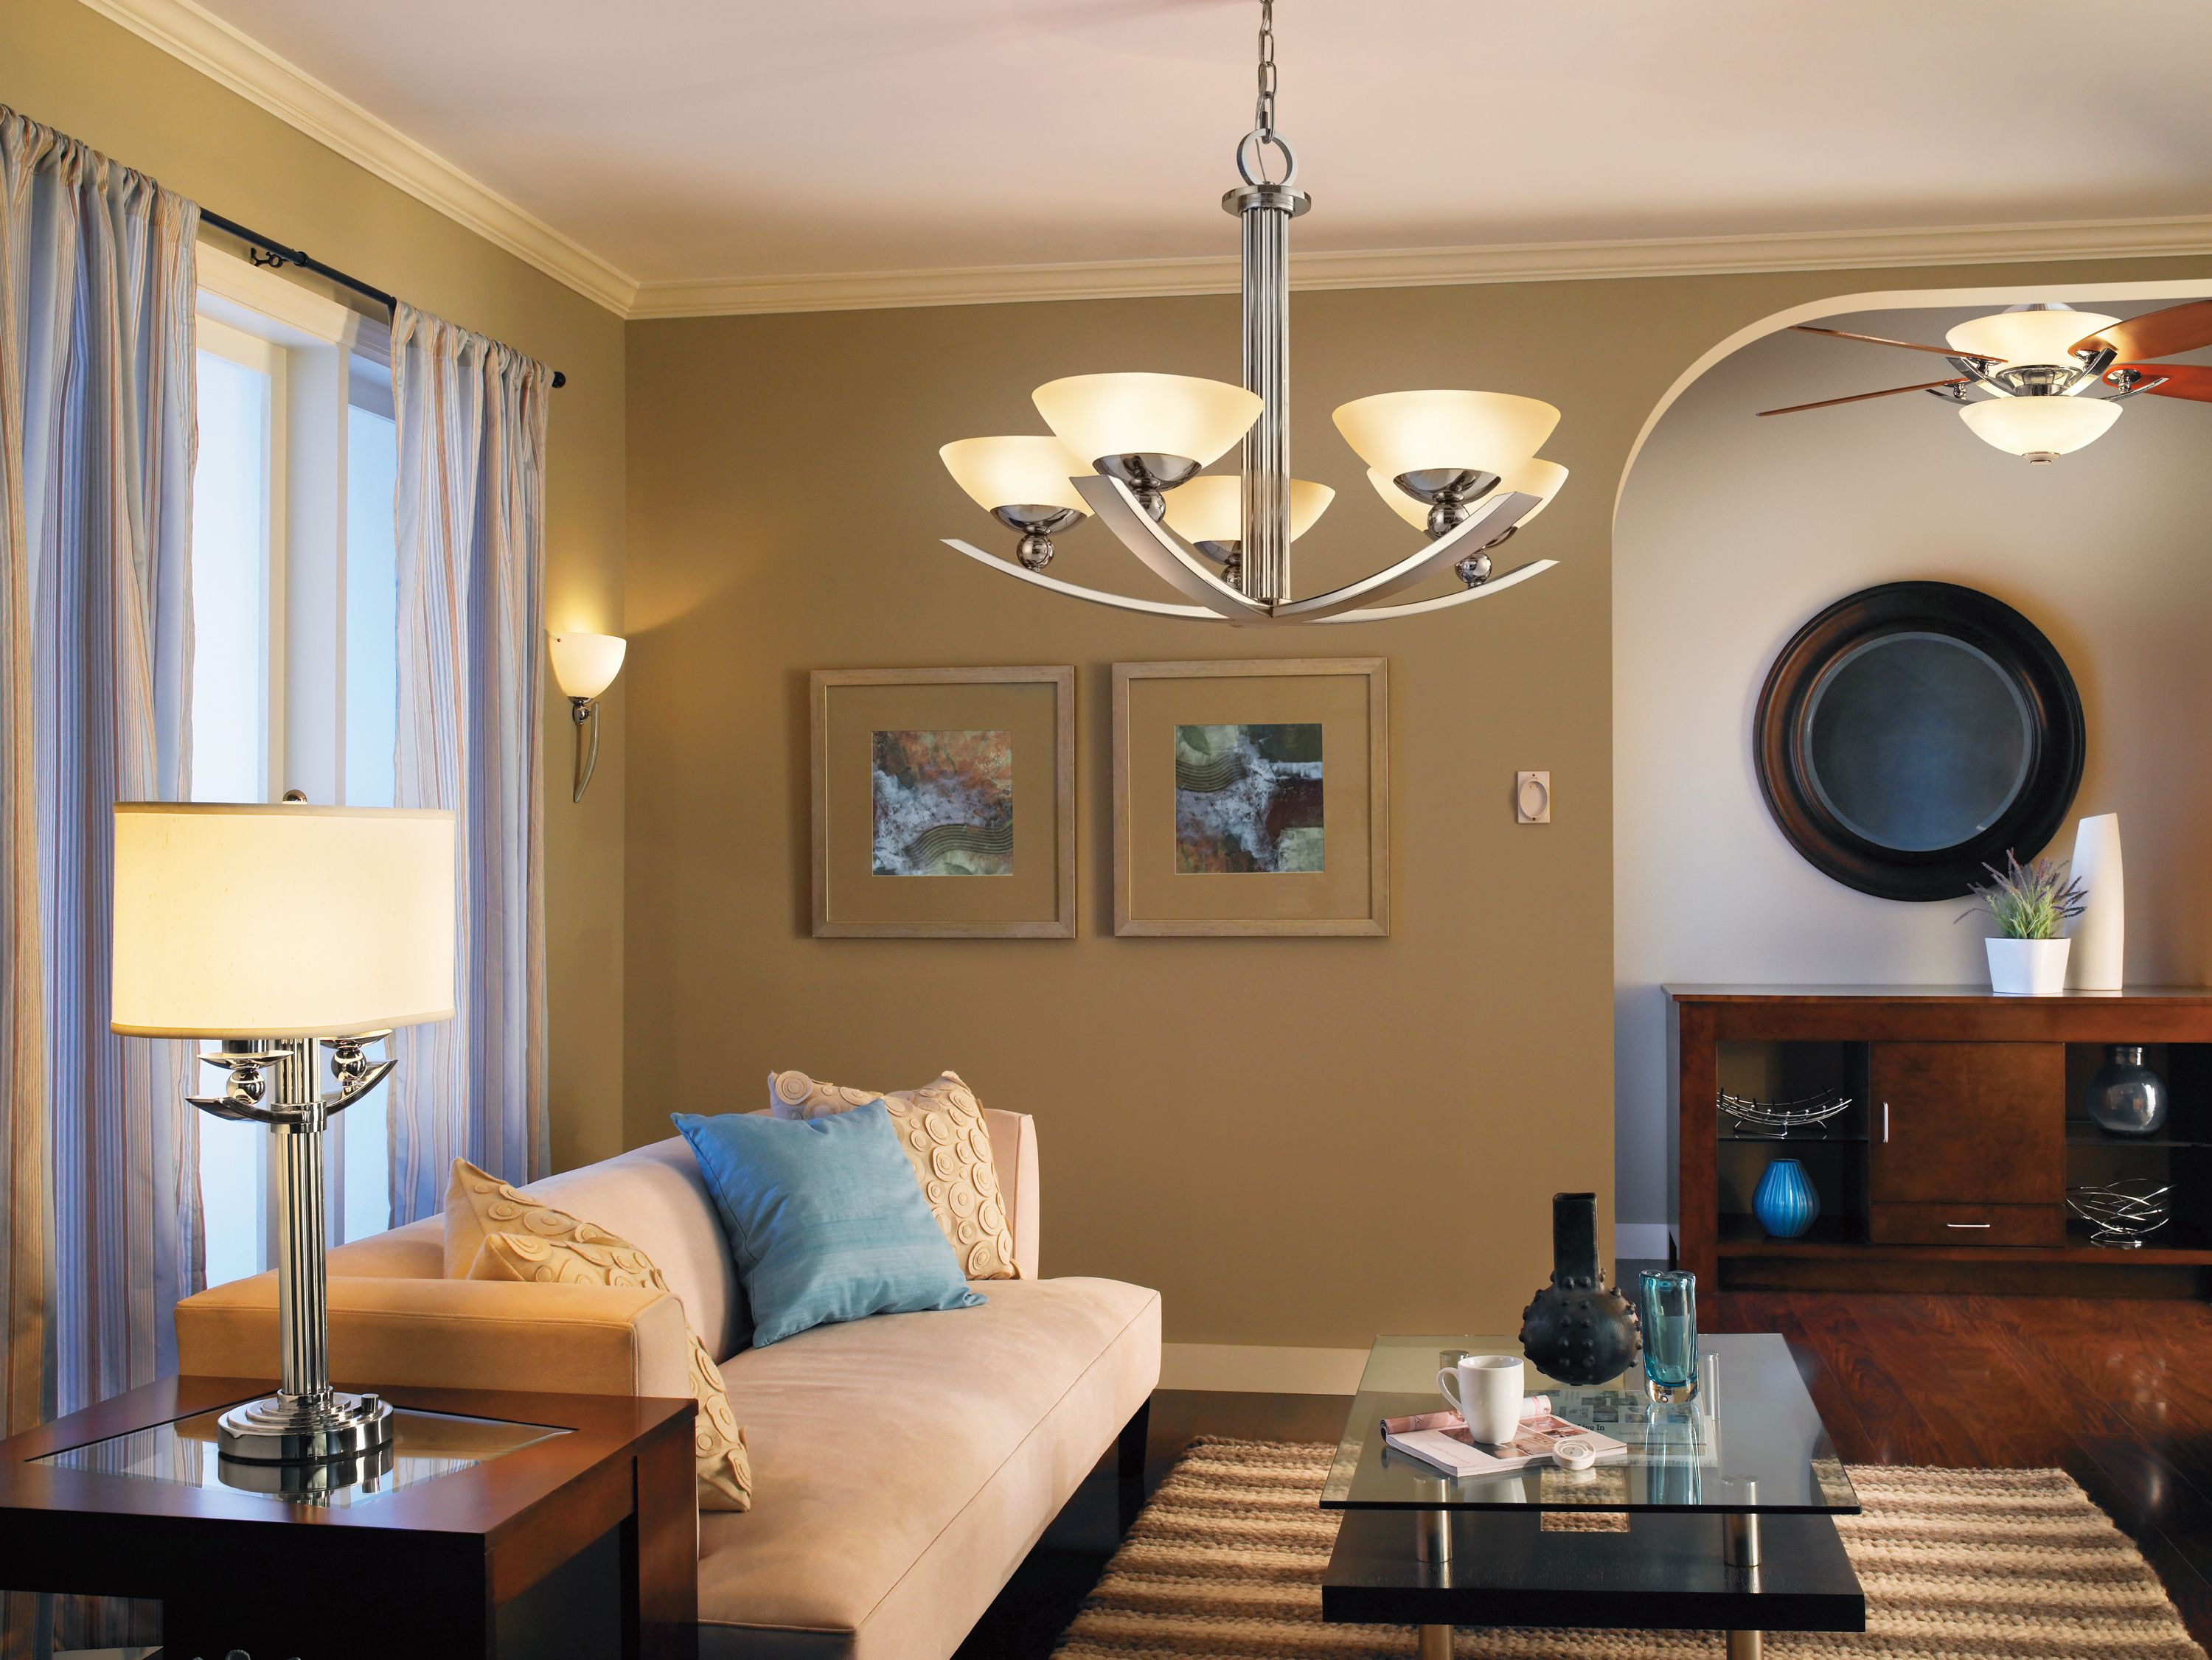 Palla Lamp Chandelier and Ceiling Fan from Kichler Lighting